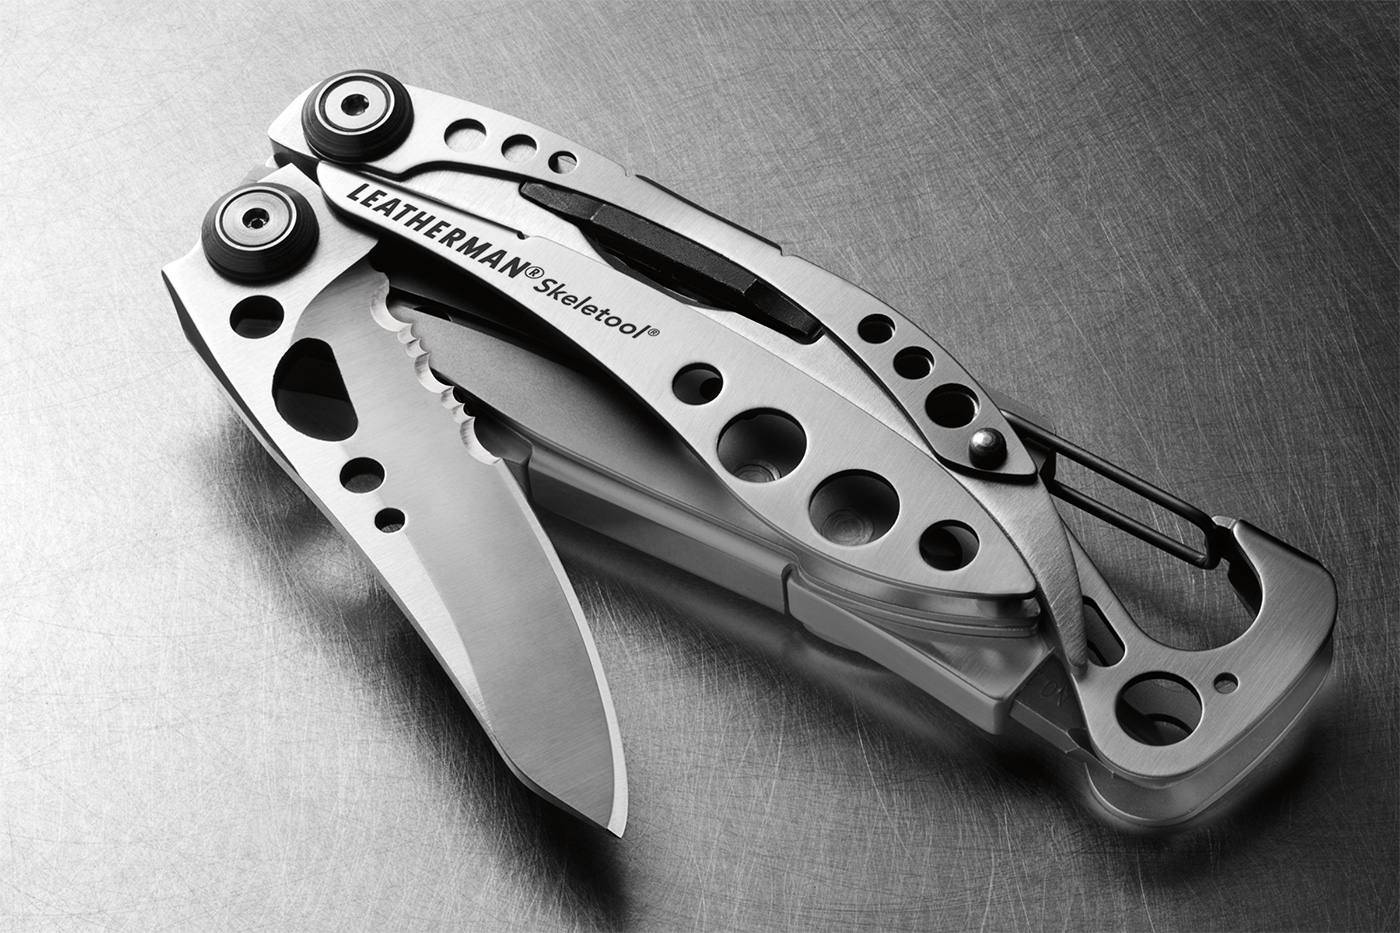 Leatherman Skeletool Metalli